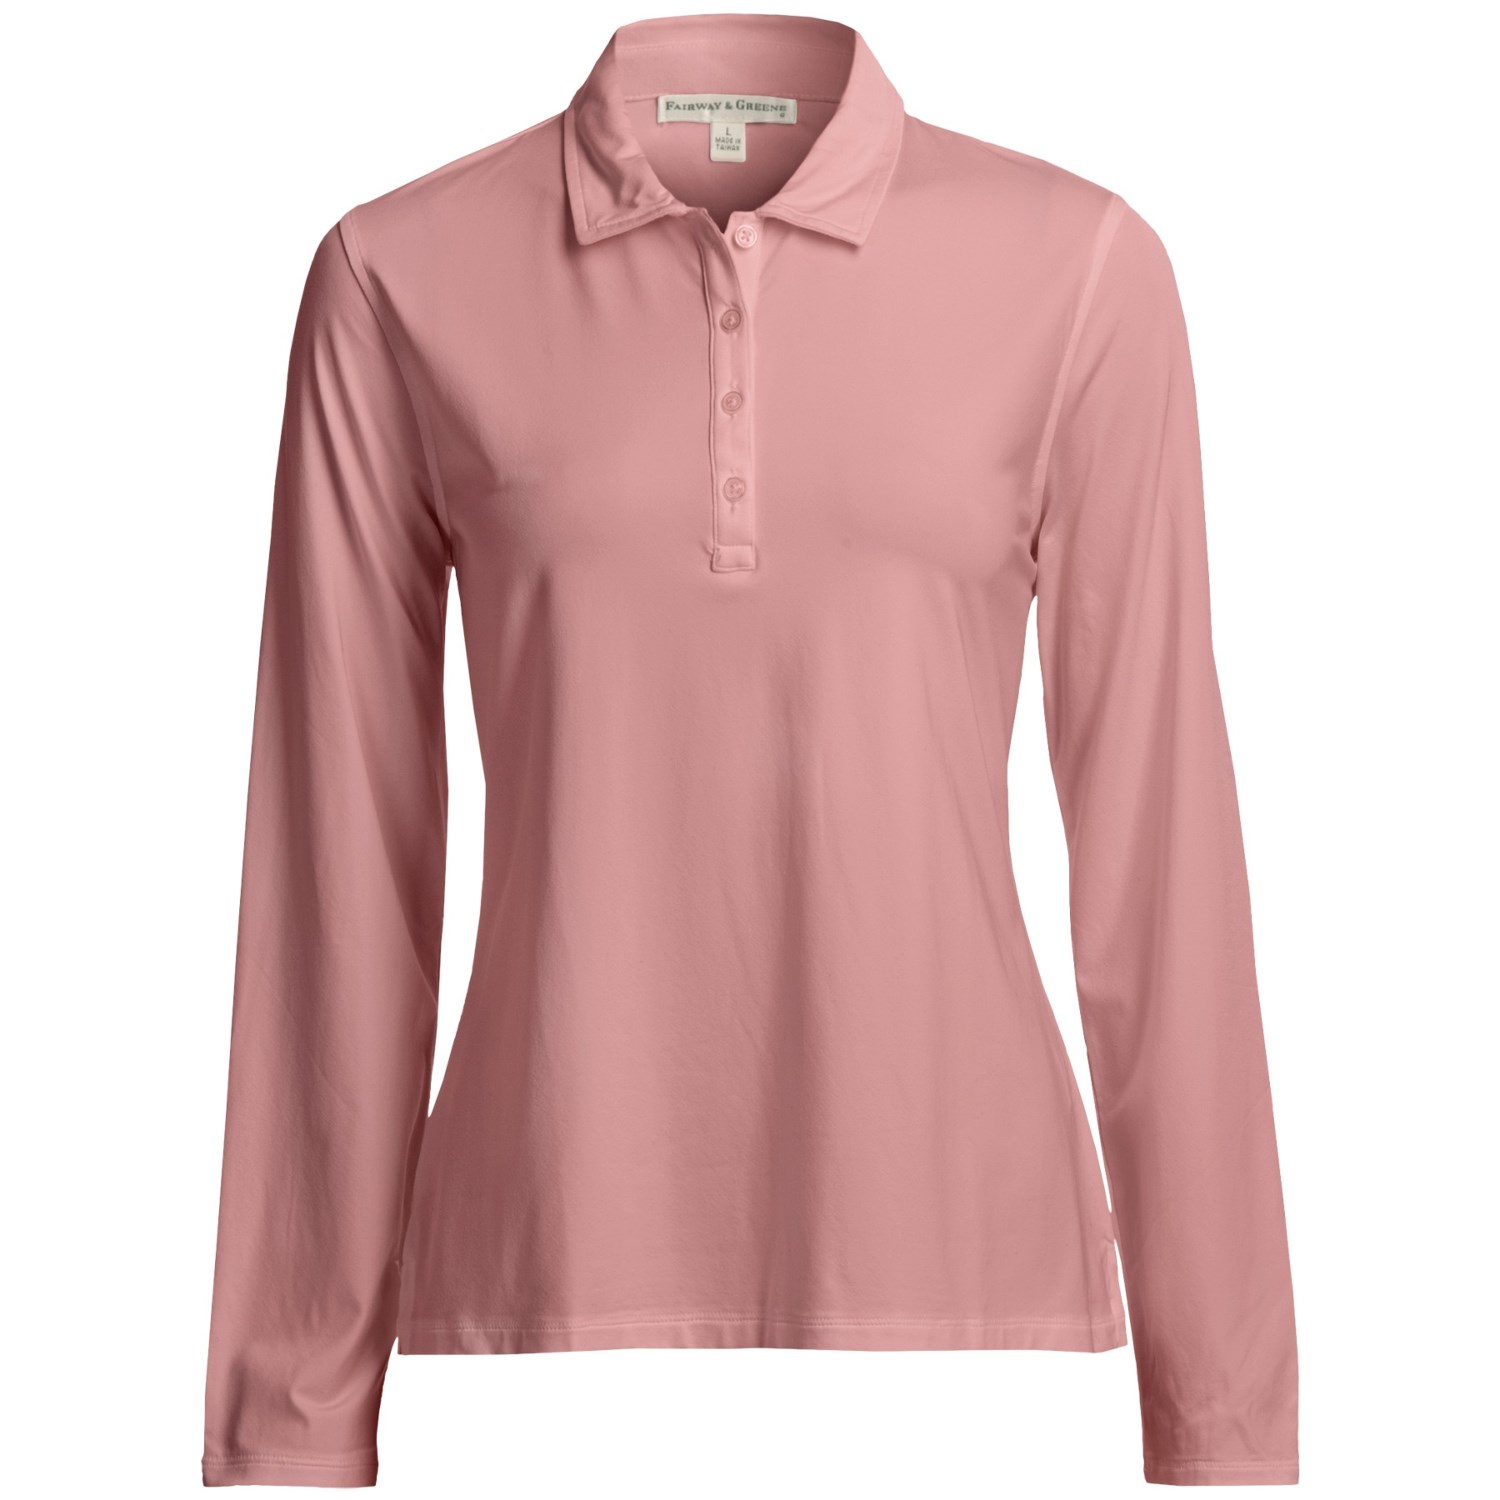 Fairway Greene Michelle Tech Jersey Polo Shirt Long